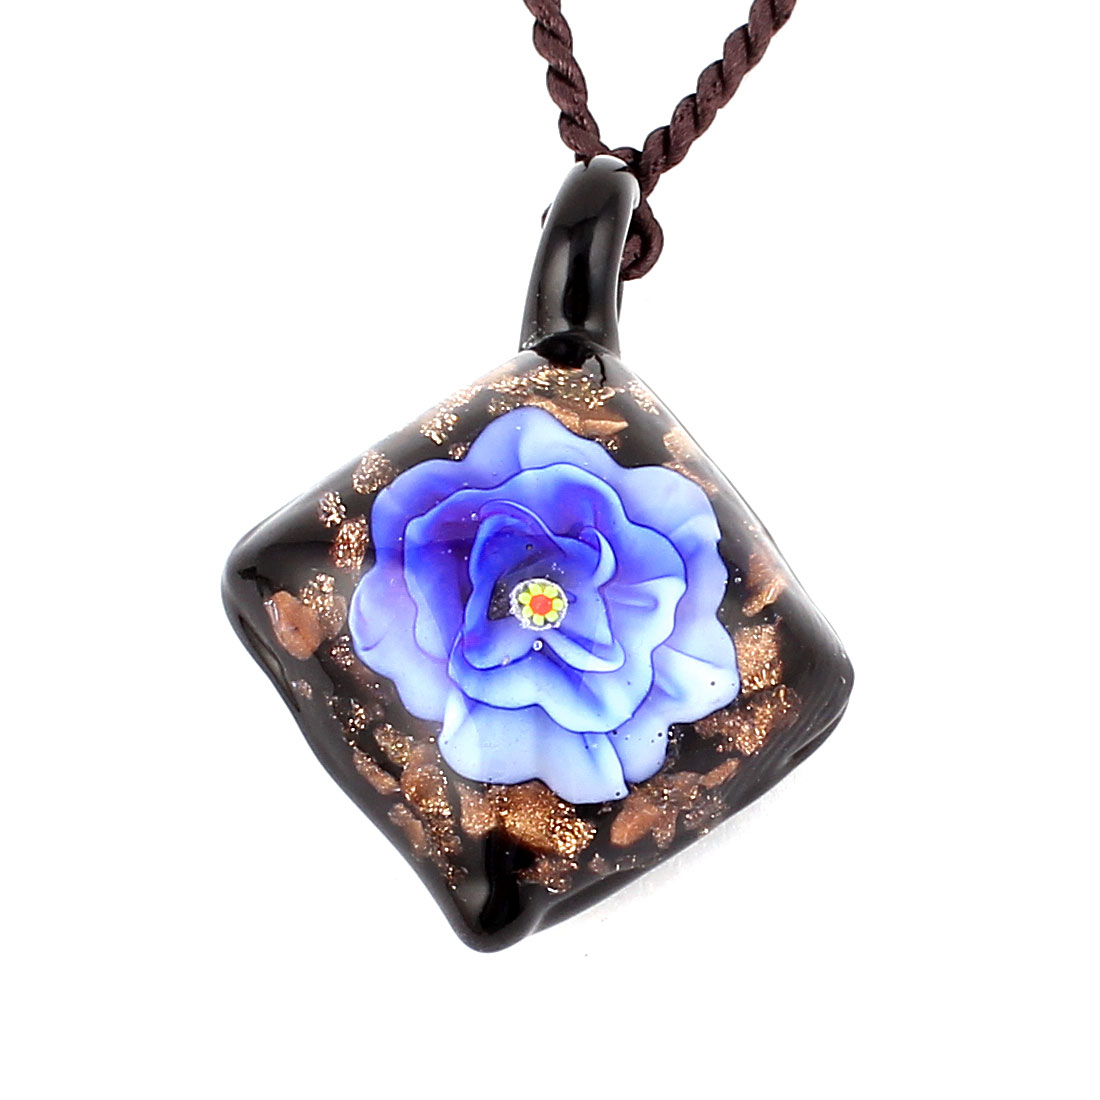 Glass Pressed Flower Style Square Pendant Necklace Neckwear Blue Black